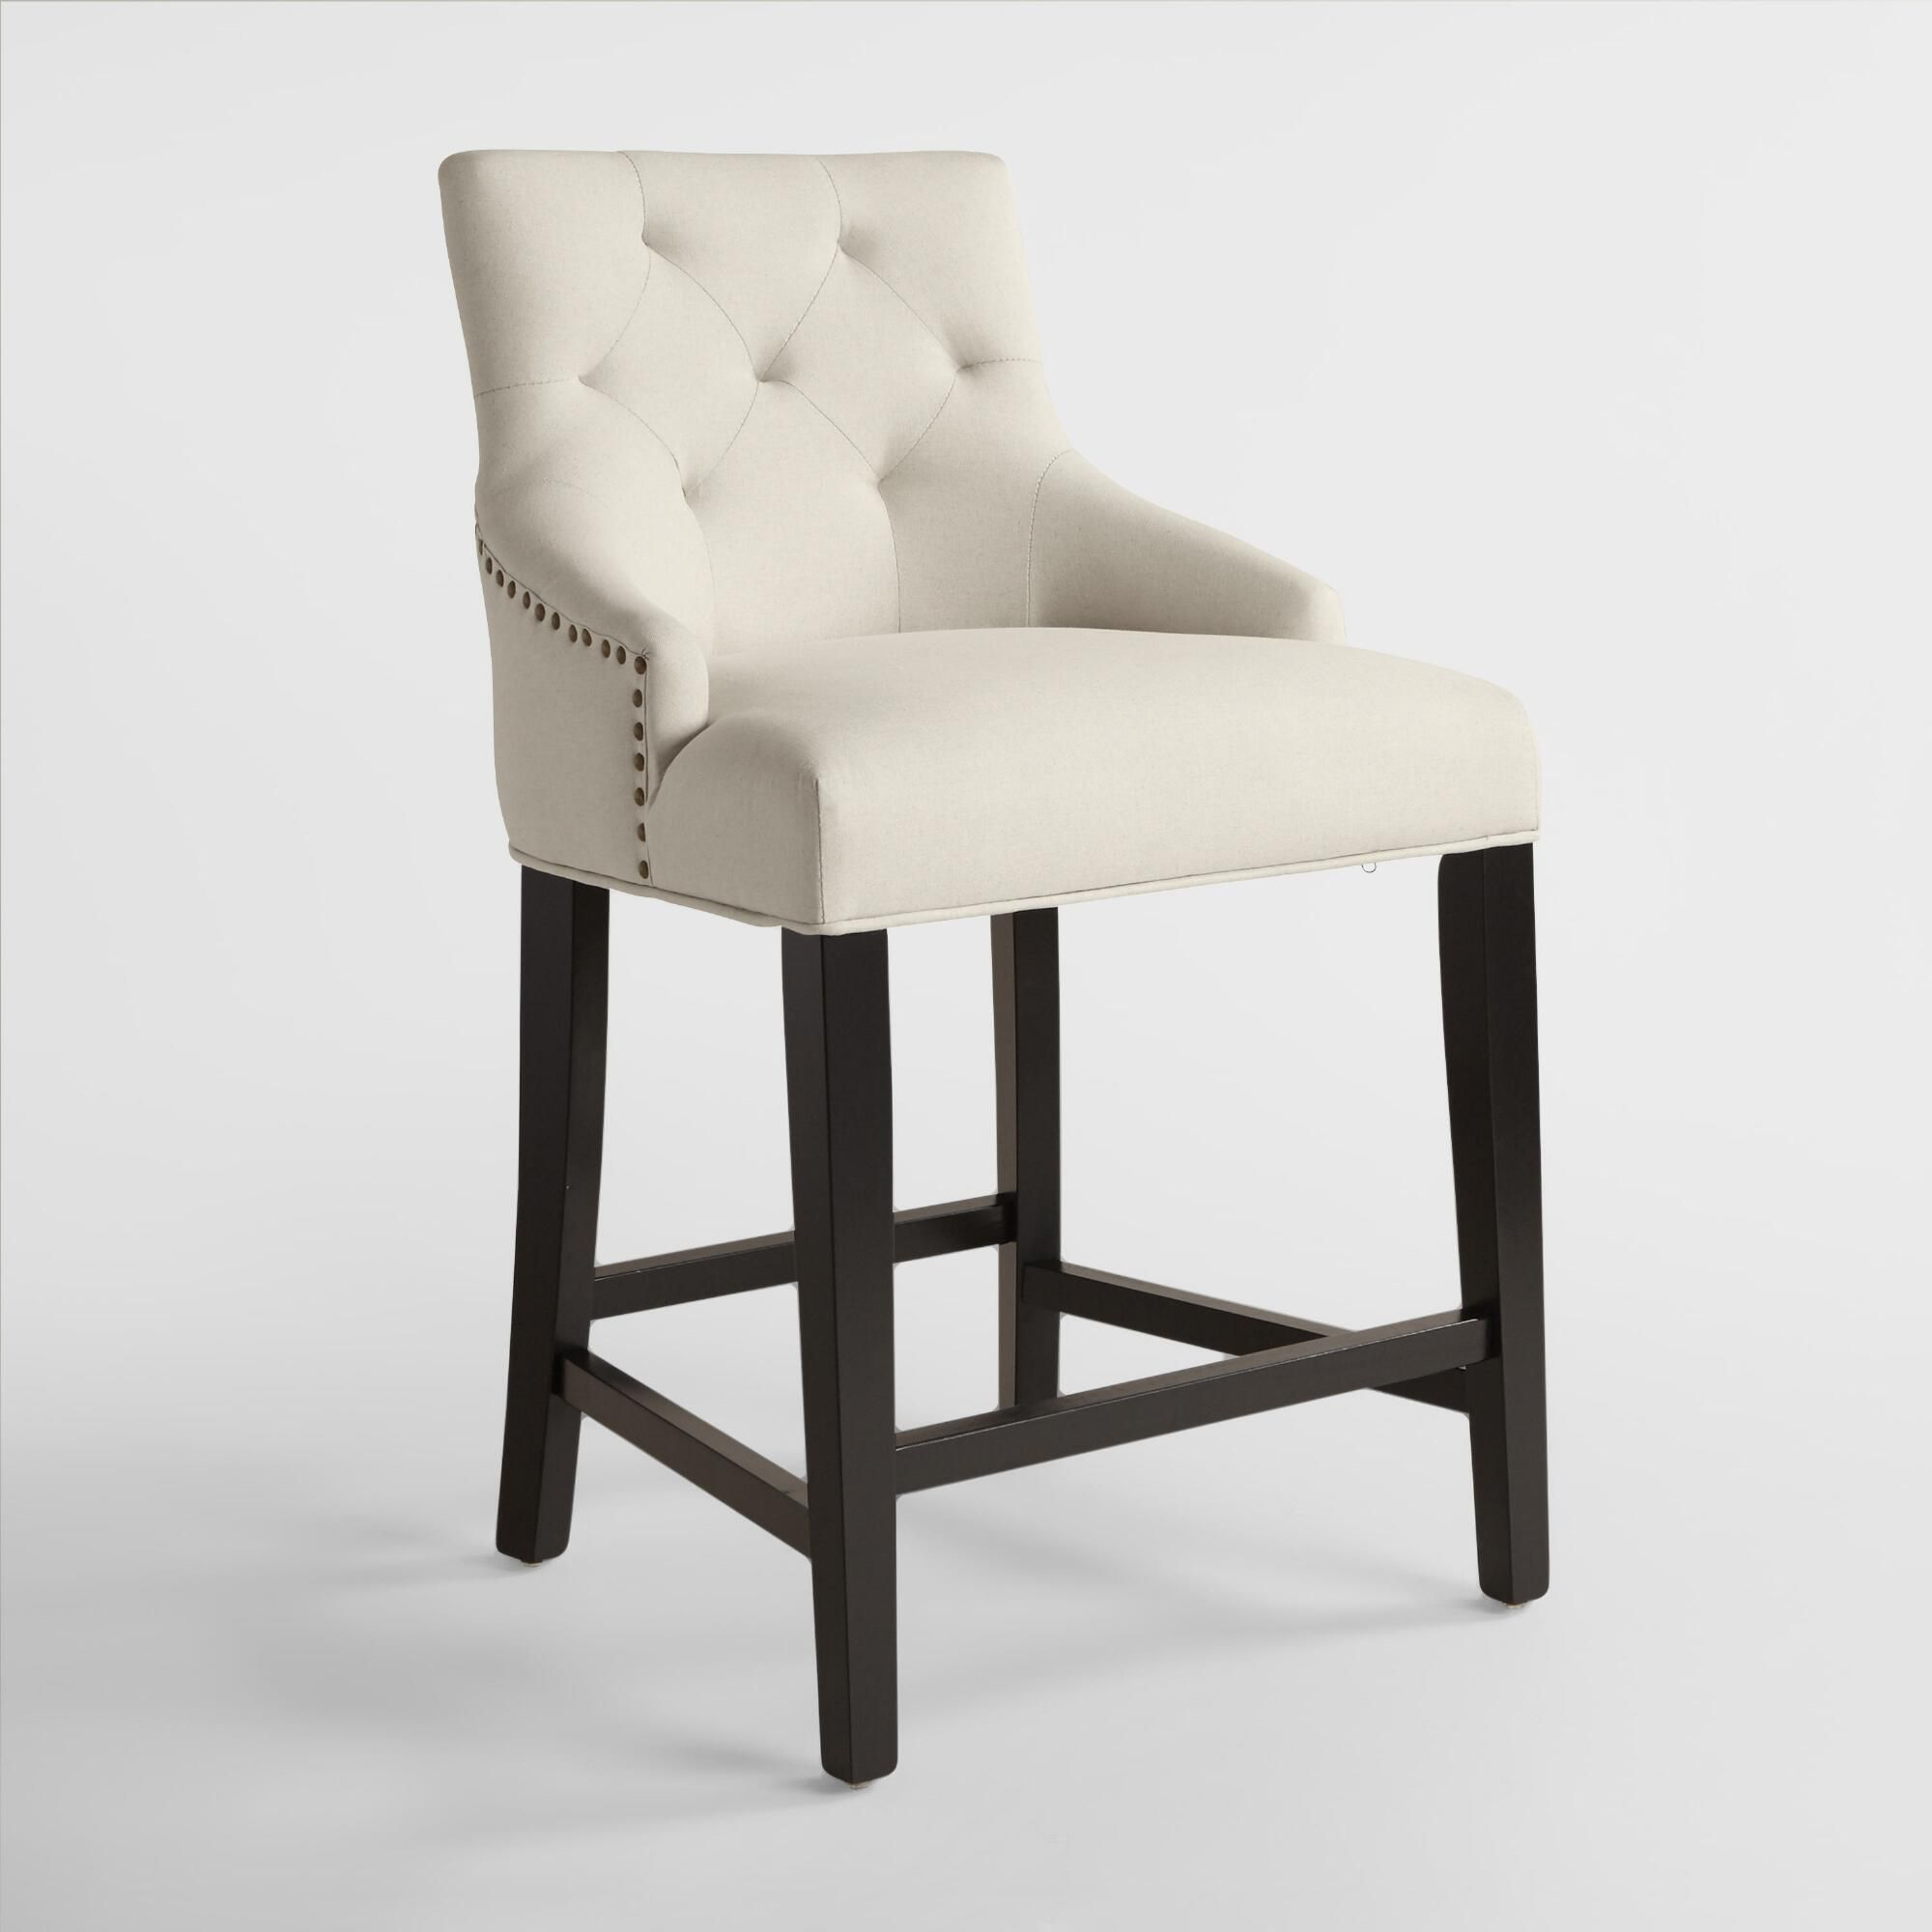 Brilliant Tufted Lydia Upholstered Counter Stool Fabric Cjindustries Chair Design For Home Cjindustriesco